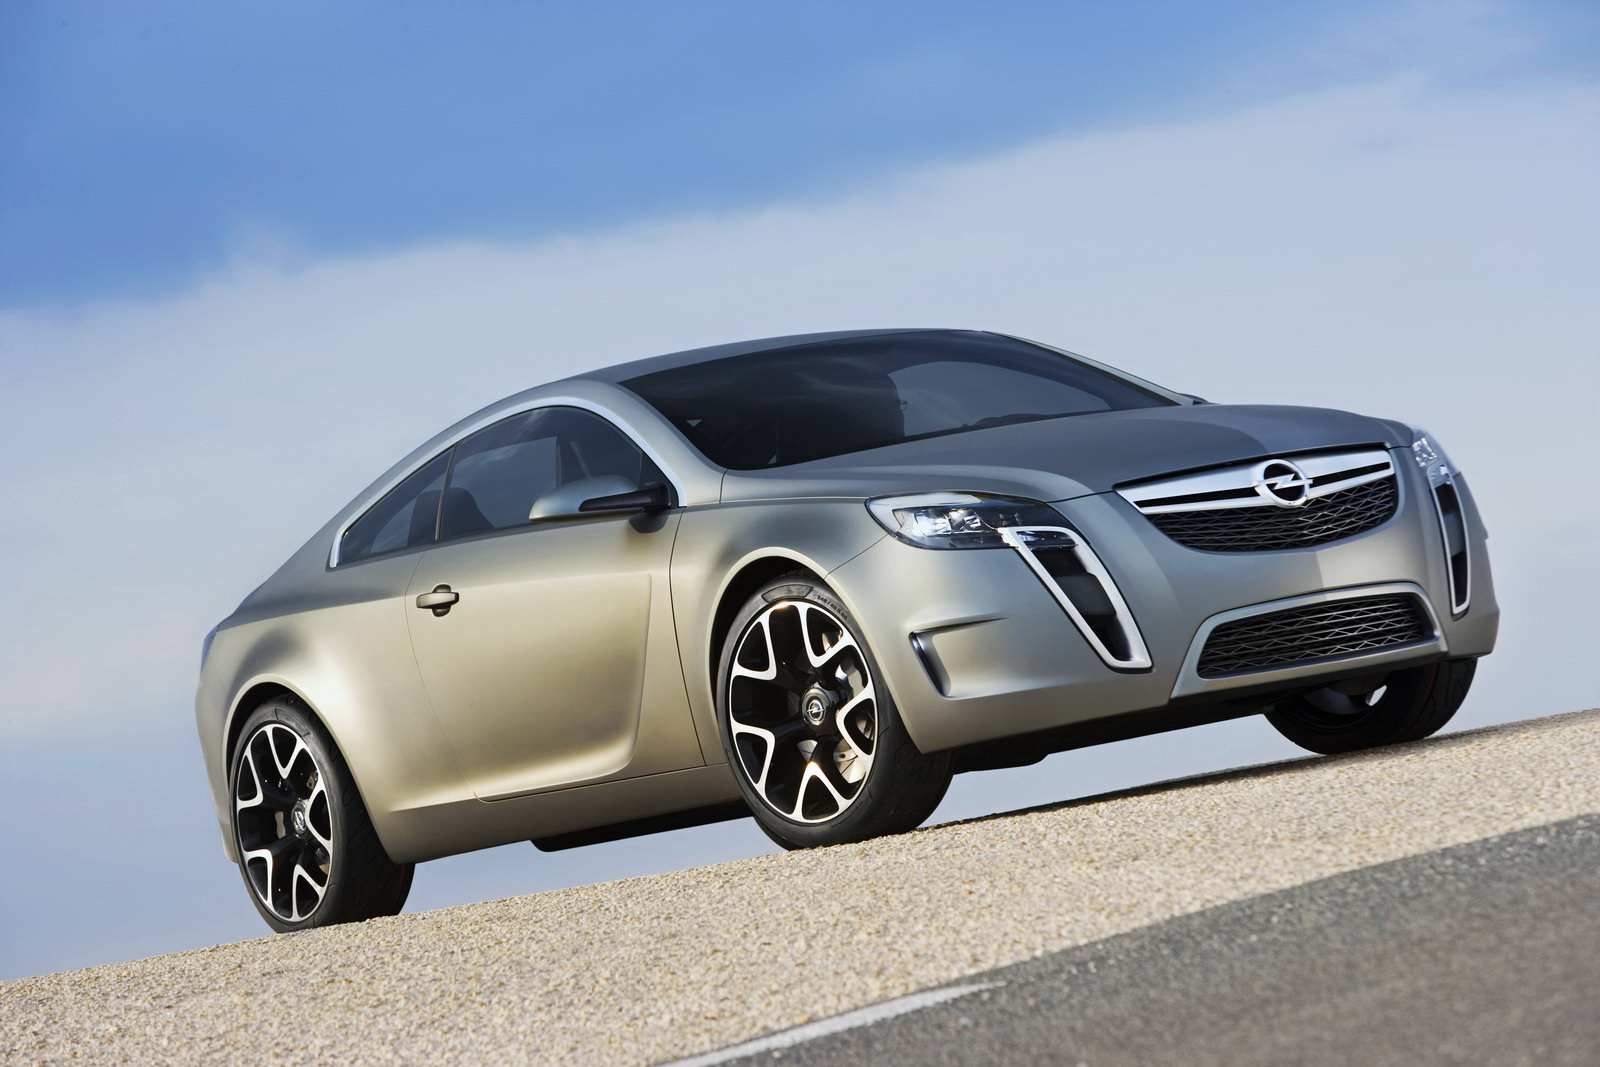 new opel calibra coupe rumored for 2013 buick version could follow carscoops. Black Bedroom Furniture Sets. Home Design Ideas